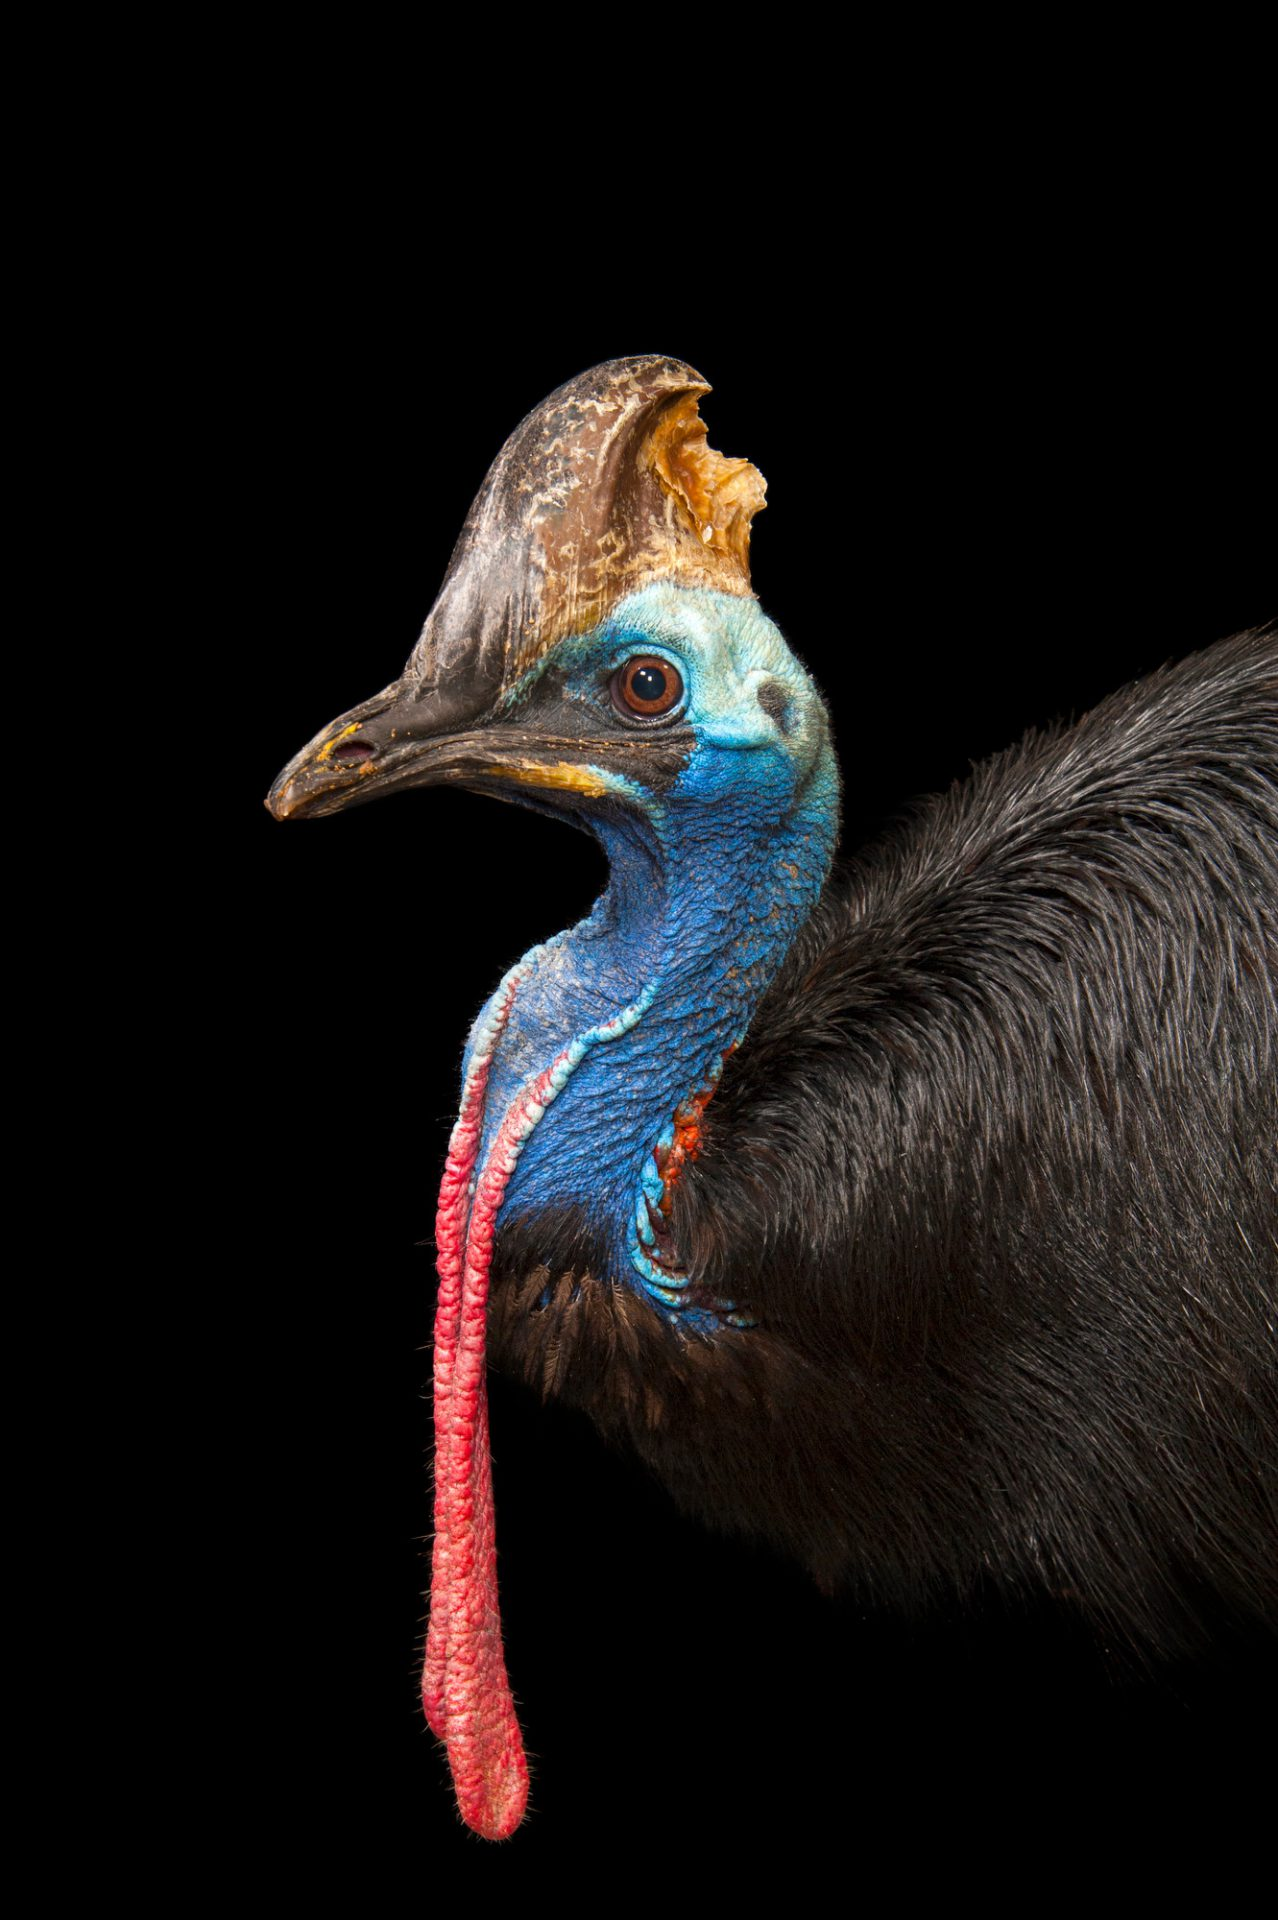 A vulnerable double-wattled cassowary (Casuarius casuarius) at the Gladys Porter Zoo in Brownsville, Texas.